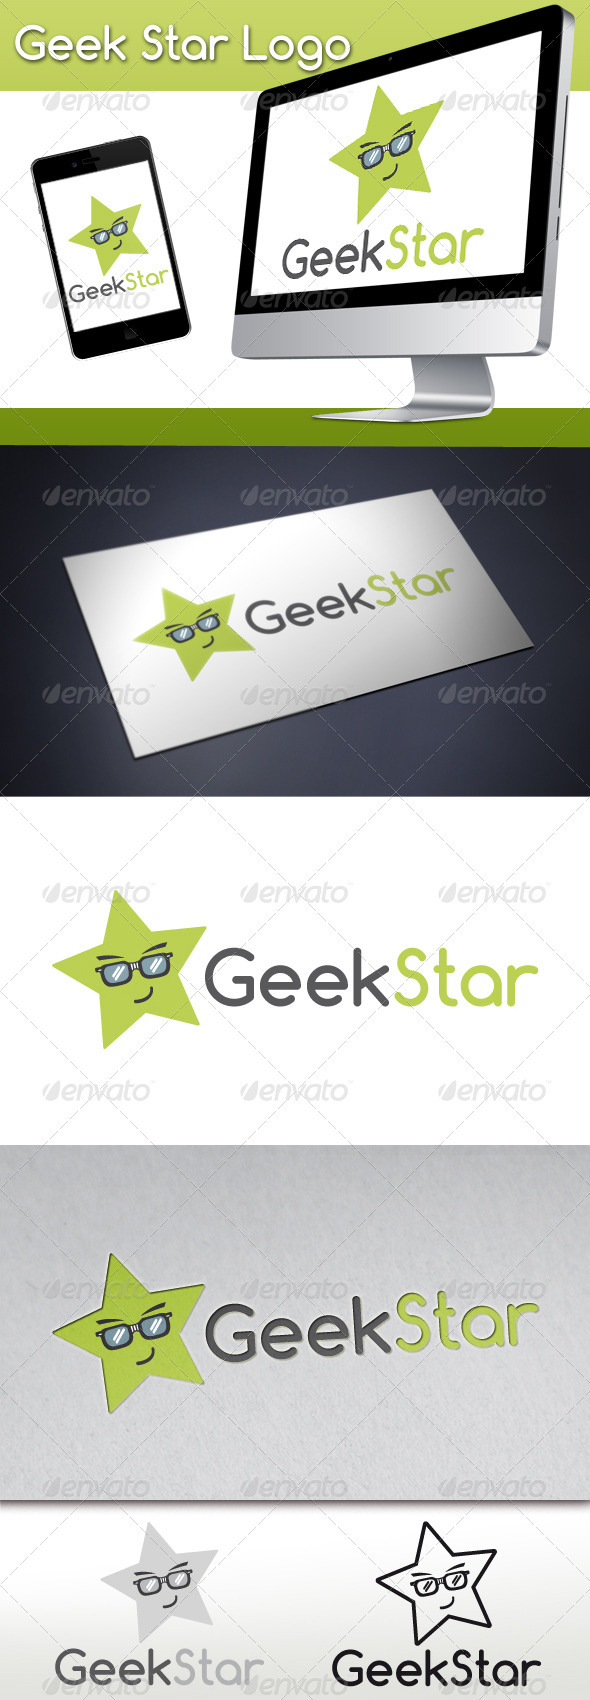 Geek Star Logo